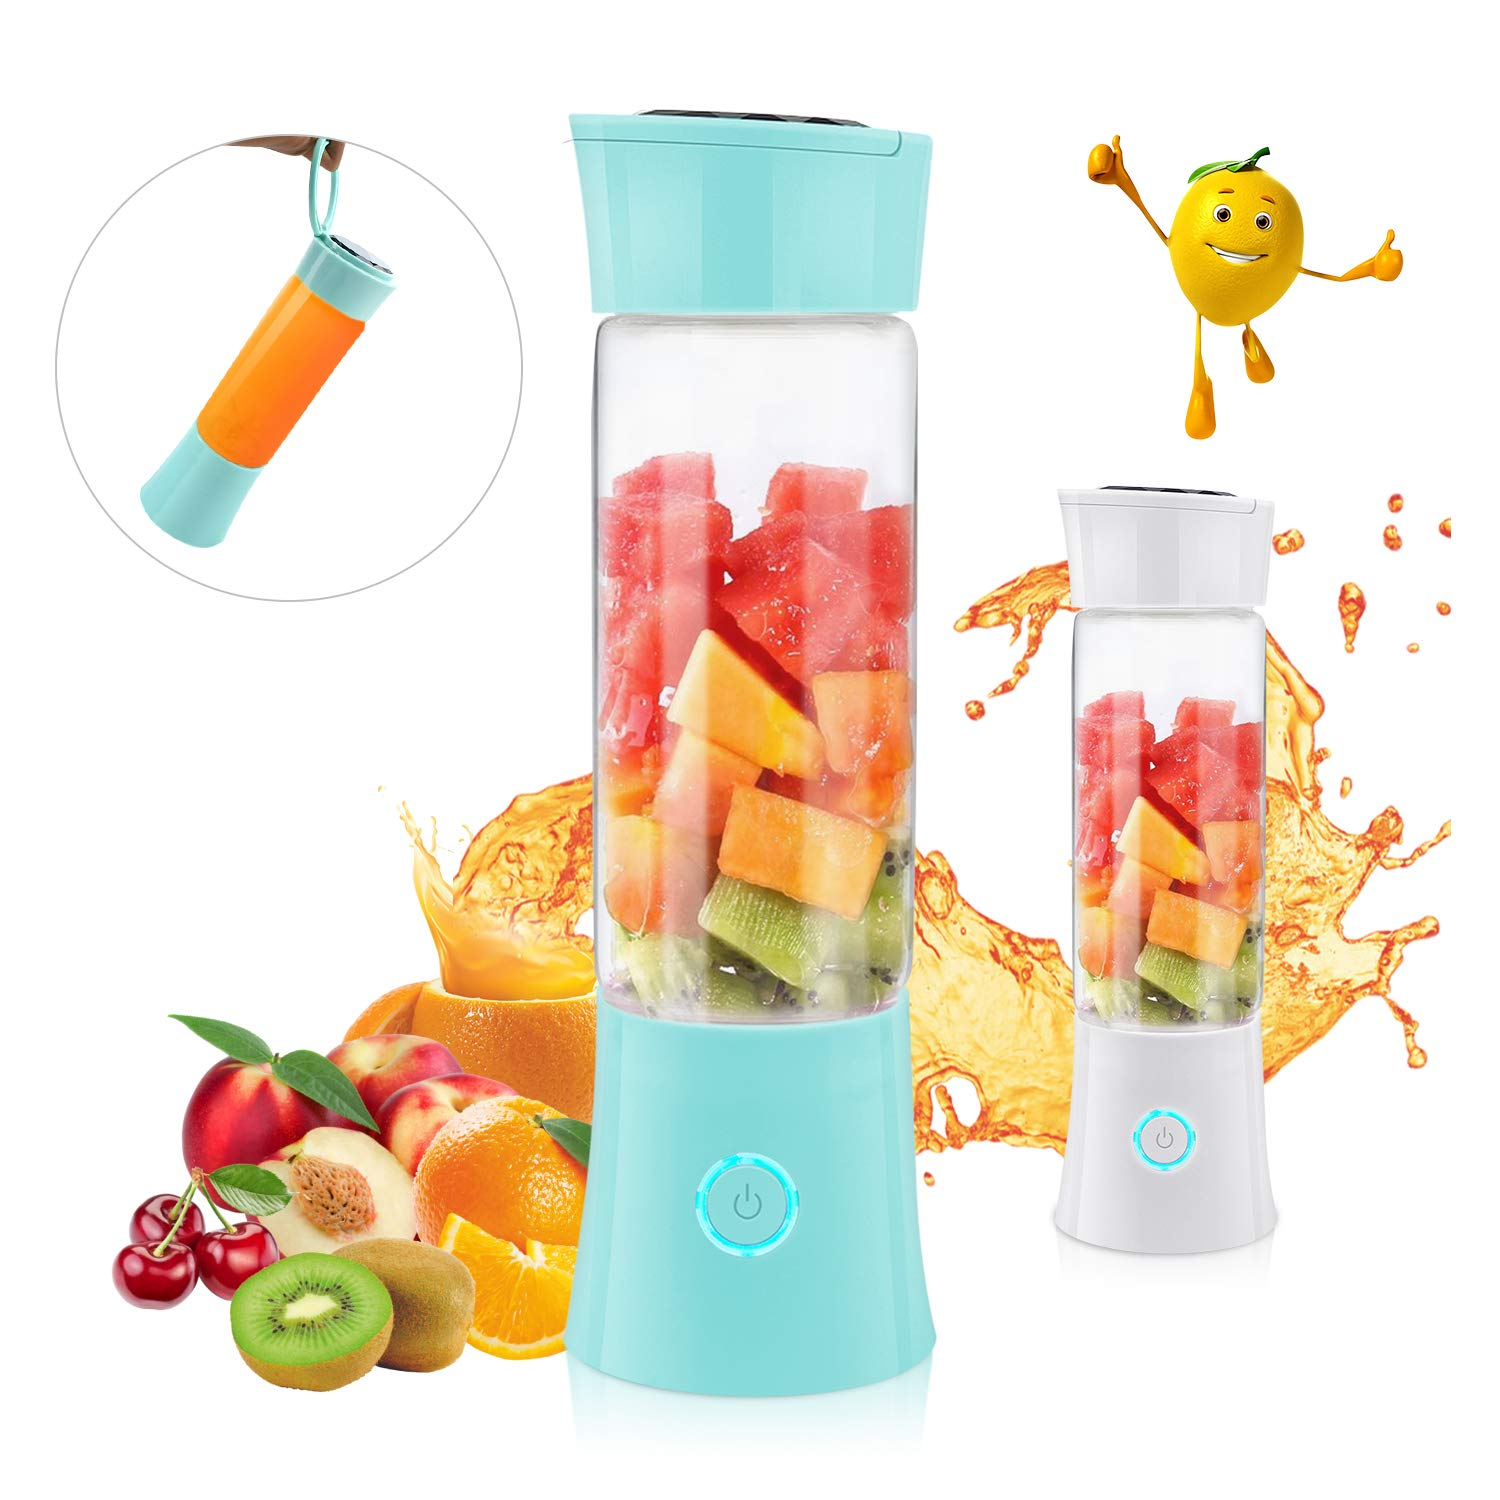 Portable Blender, Supkiir USB Rechargeable Mini Juicer Cup with Handle, Smoothie Blender with 6 Blades with 4000mAh Batteries, 480ml Household Fruit Mixer for Travel Office Sports School by Supkiir